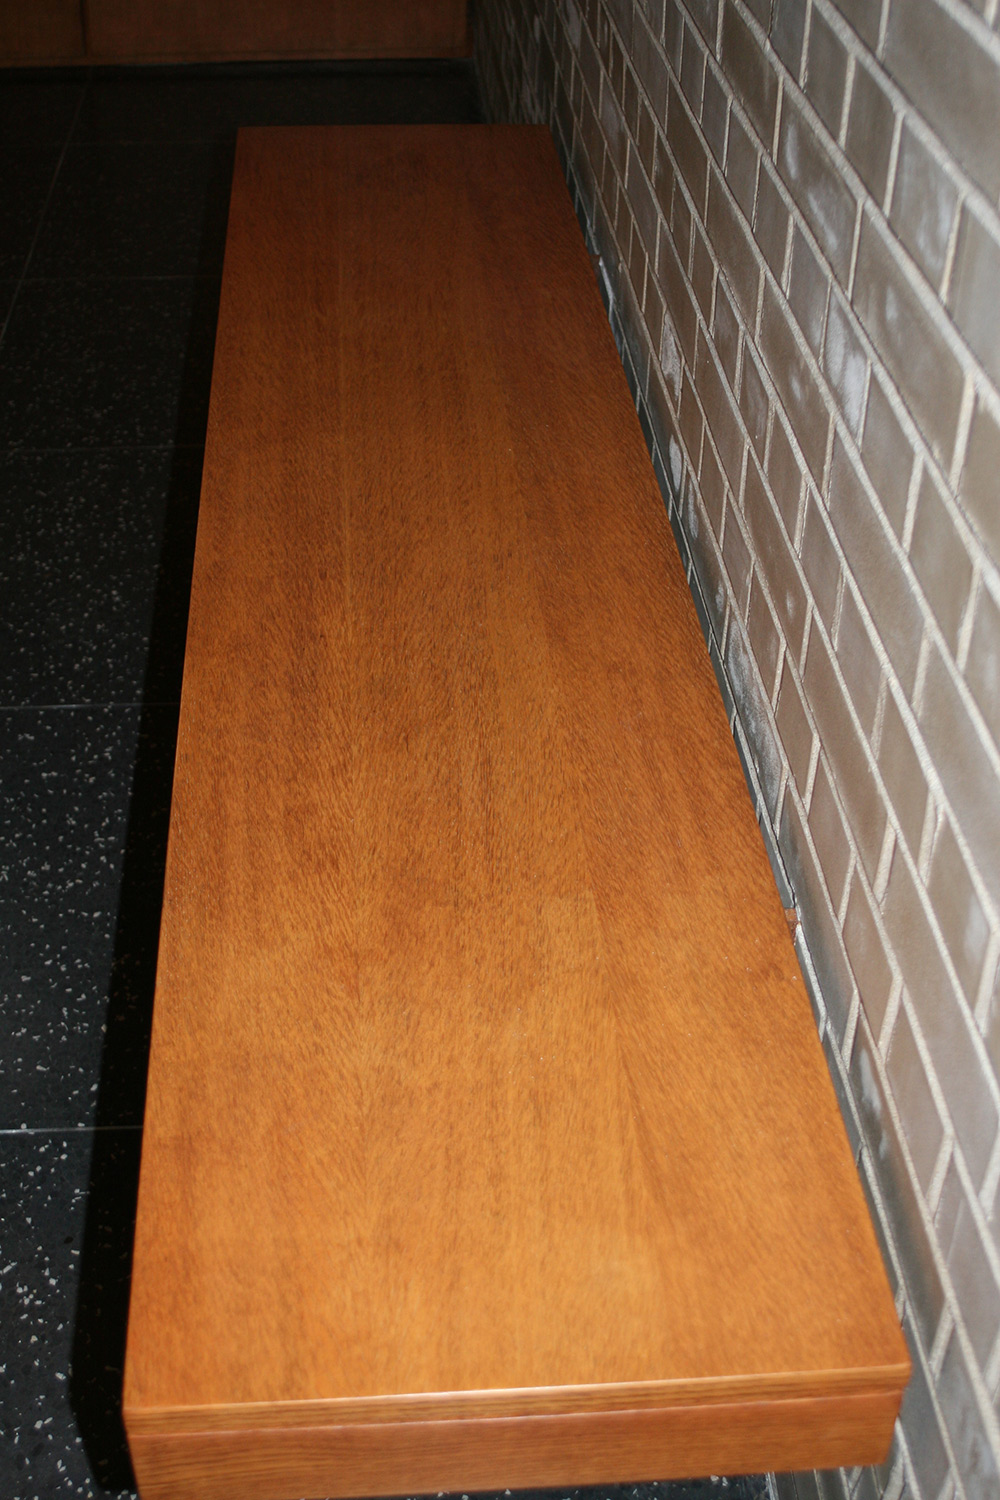 Veneered bench after treatment